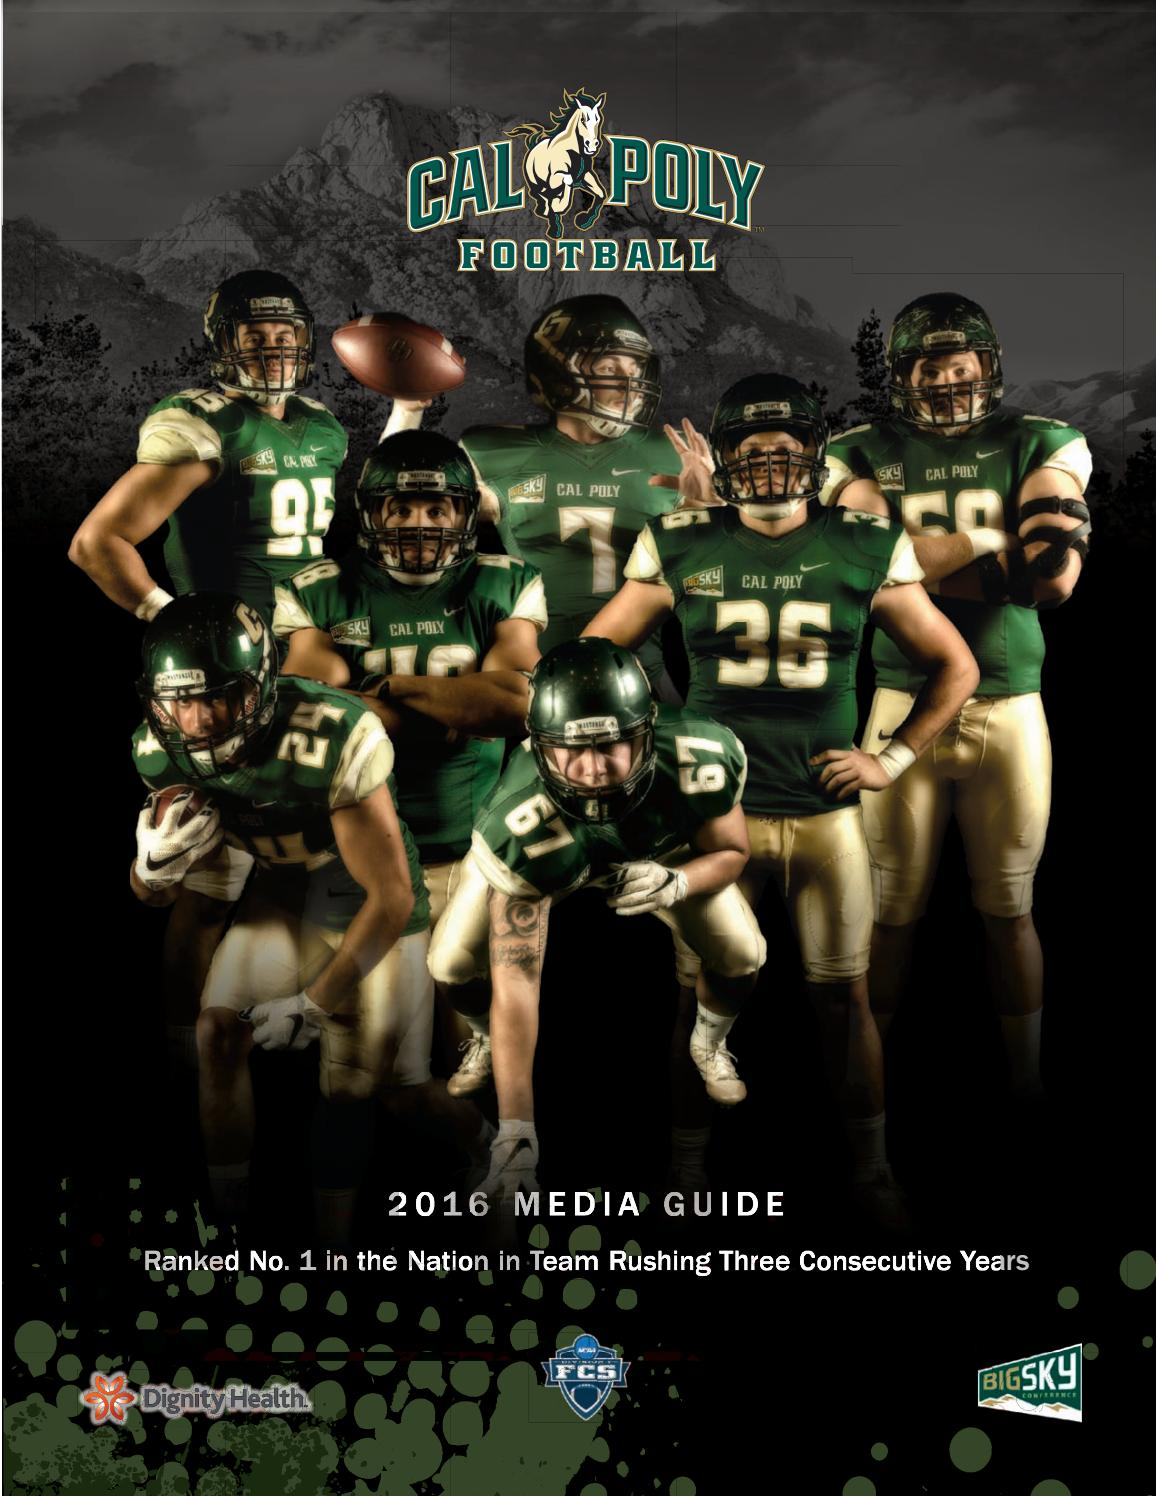 a3f21c061a8 2016 Cal Poly Football Media Guide by Cal Poly Athletics - issuu